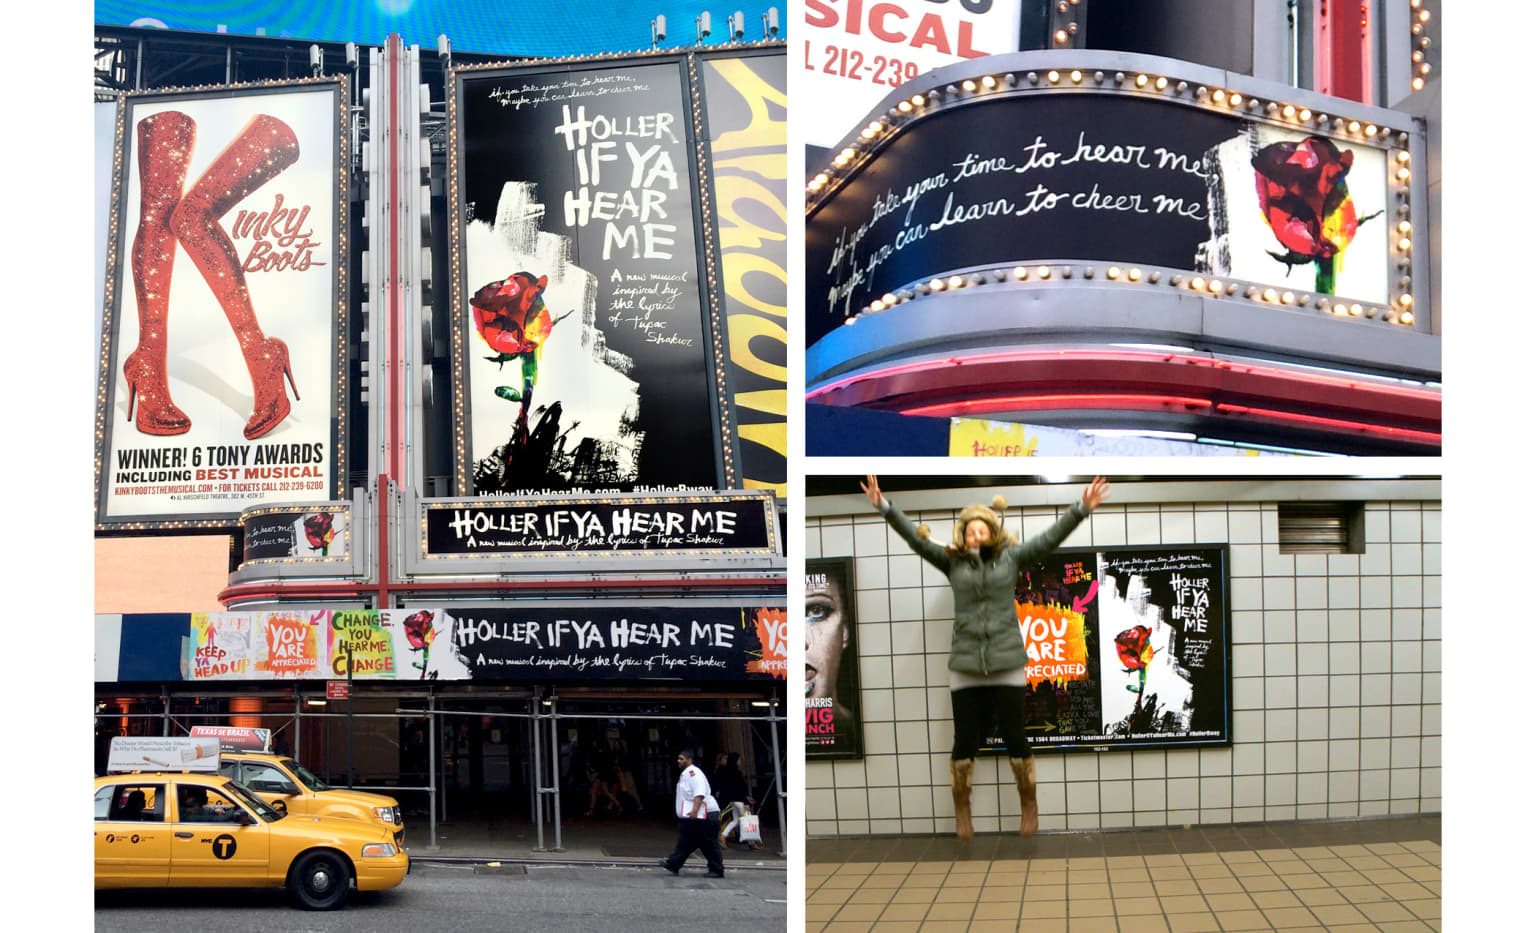 HOLLER IF YA HEAR ME / A BROADWAY MUSICAL CELEBRATING THE LIFE OF TUPAC SHAKUR / INTEGRATED MARKETING CAMPAIGN